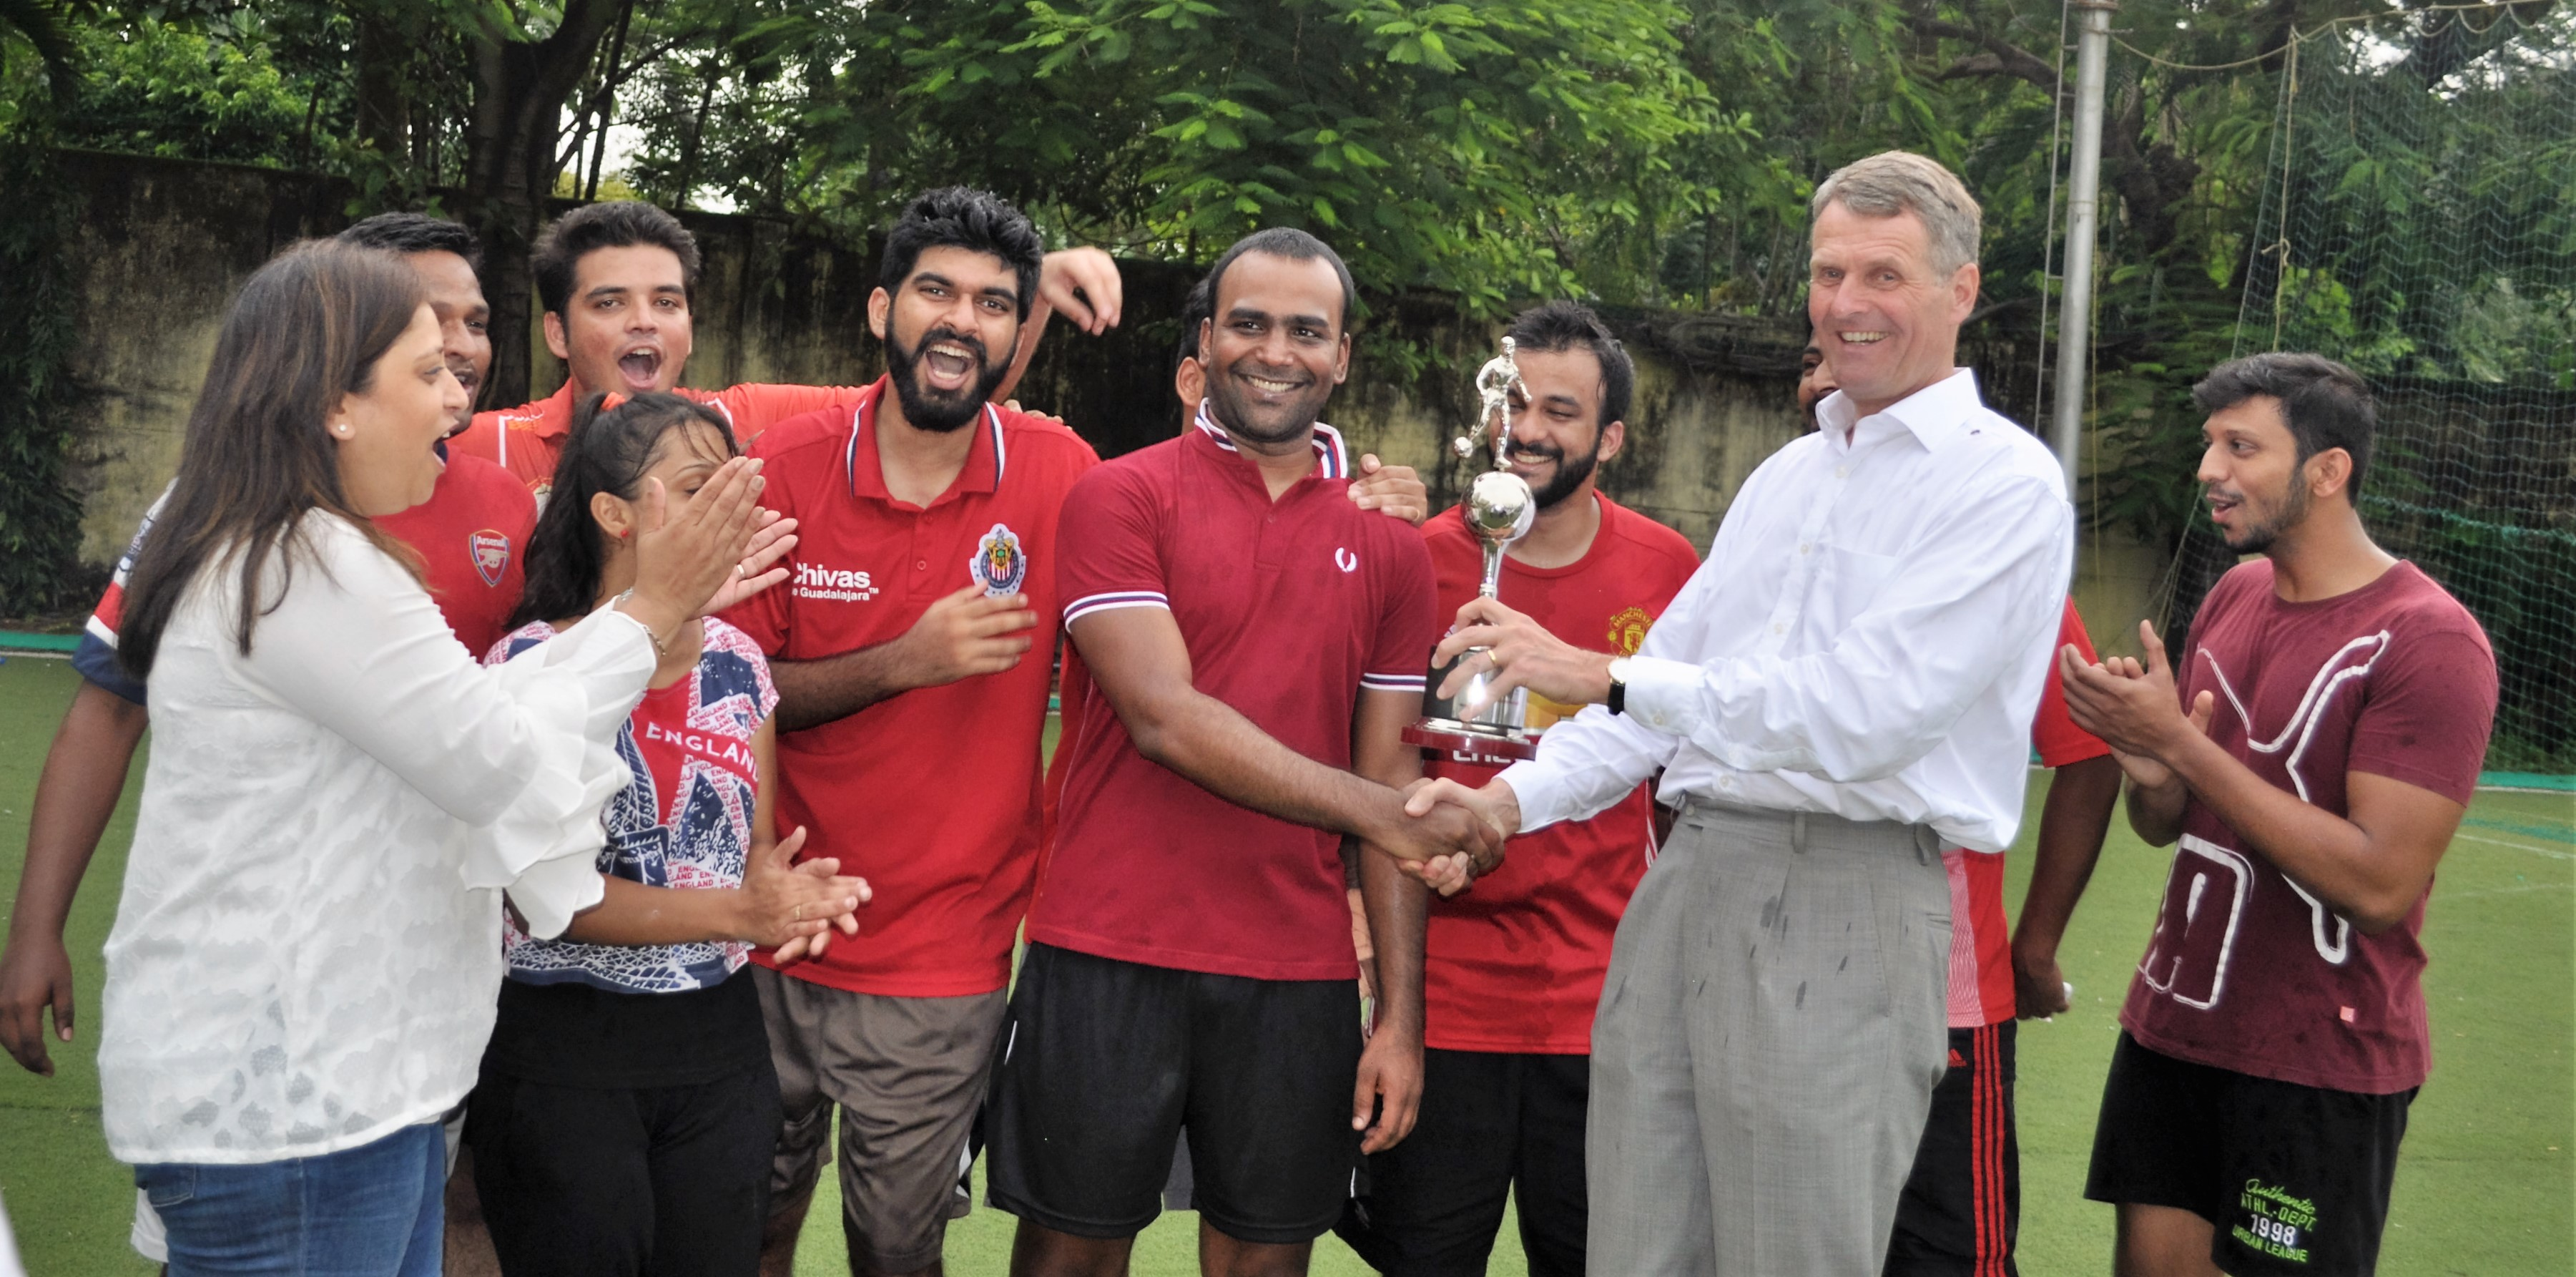 Mr Bernhard Steinruecke, Director General IGCC and Ms. Radhieka Mehta, Director IGTC, handover the trophy to the winning team.